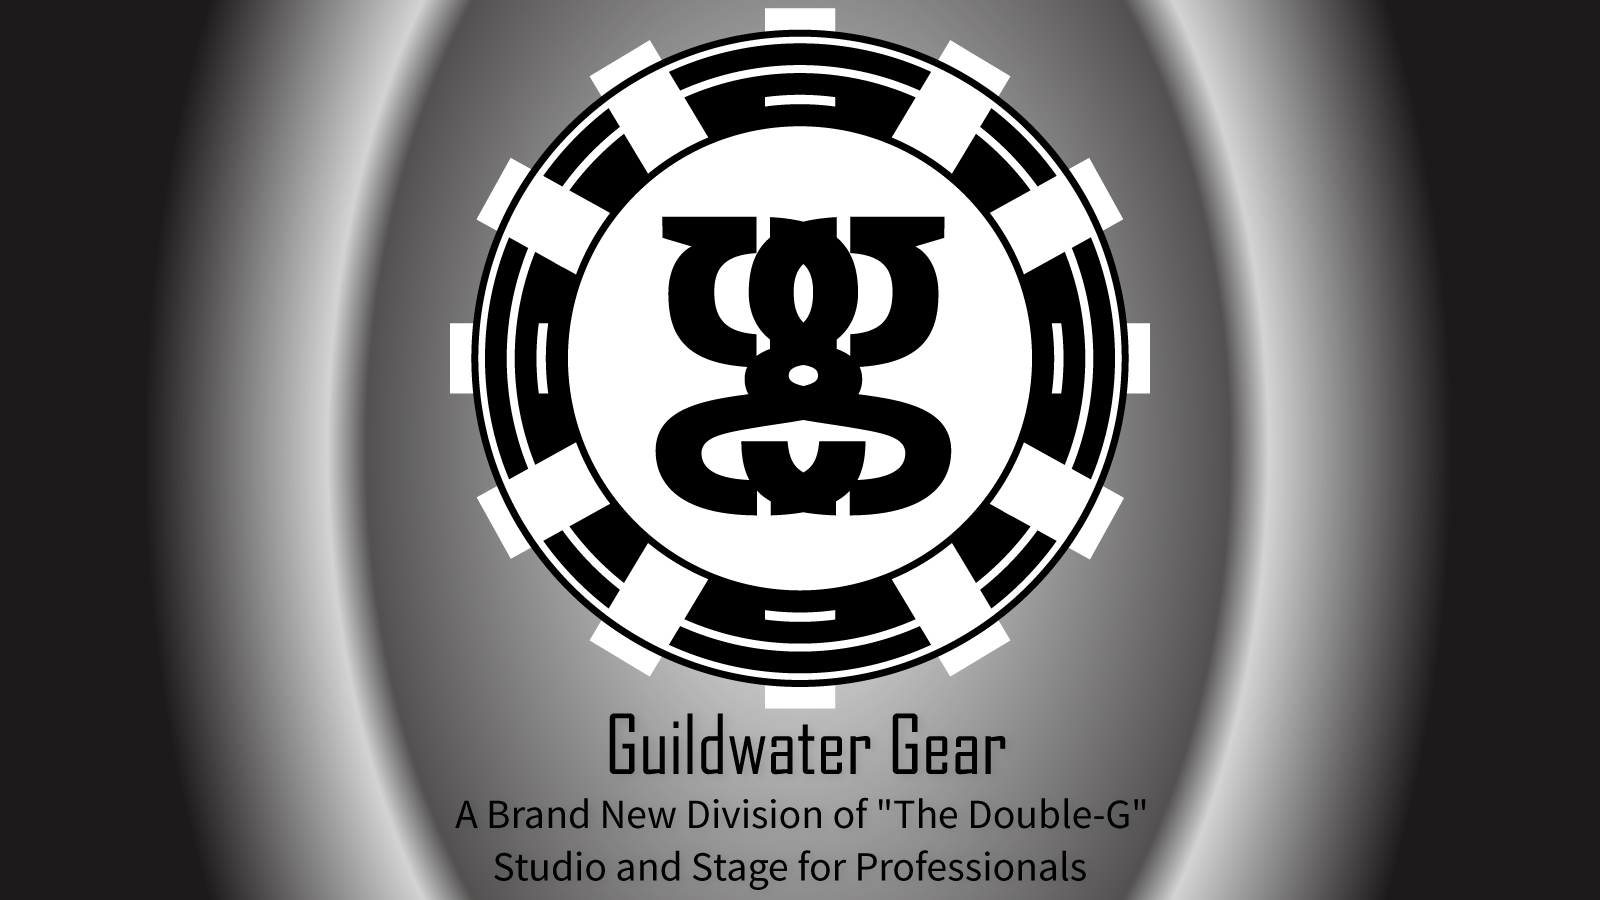 Guildwater Gear